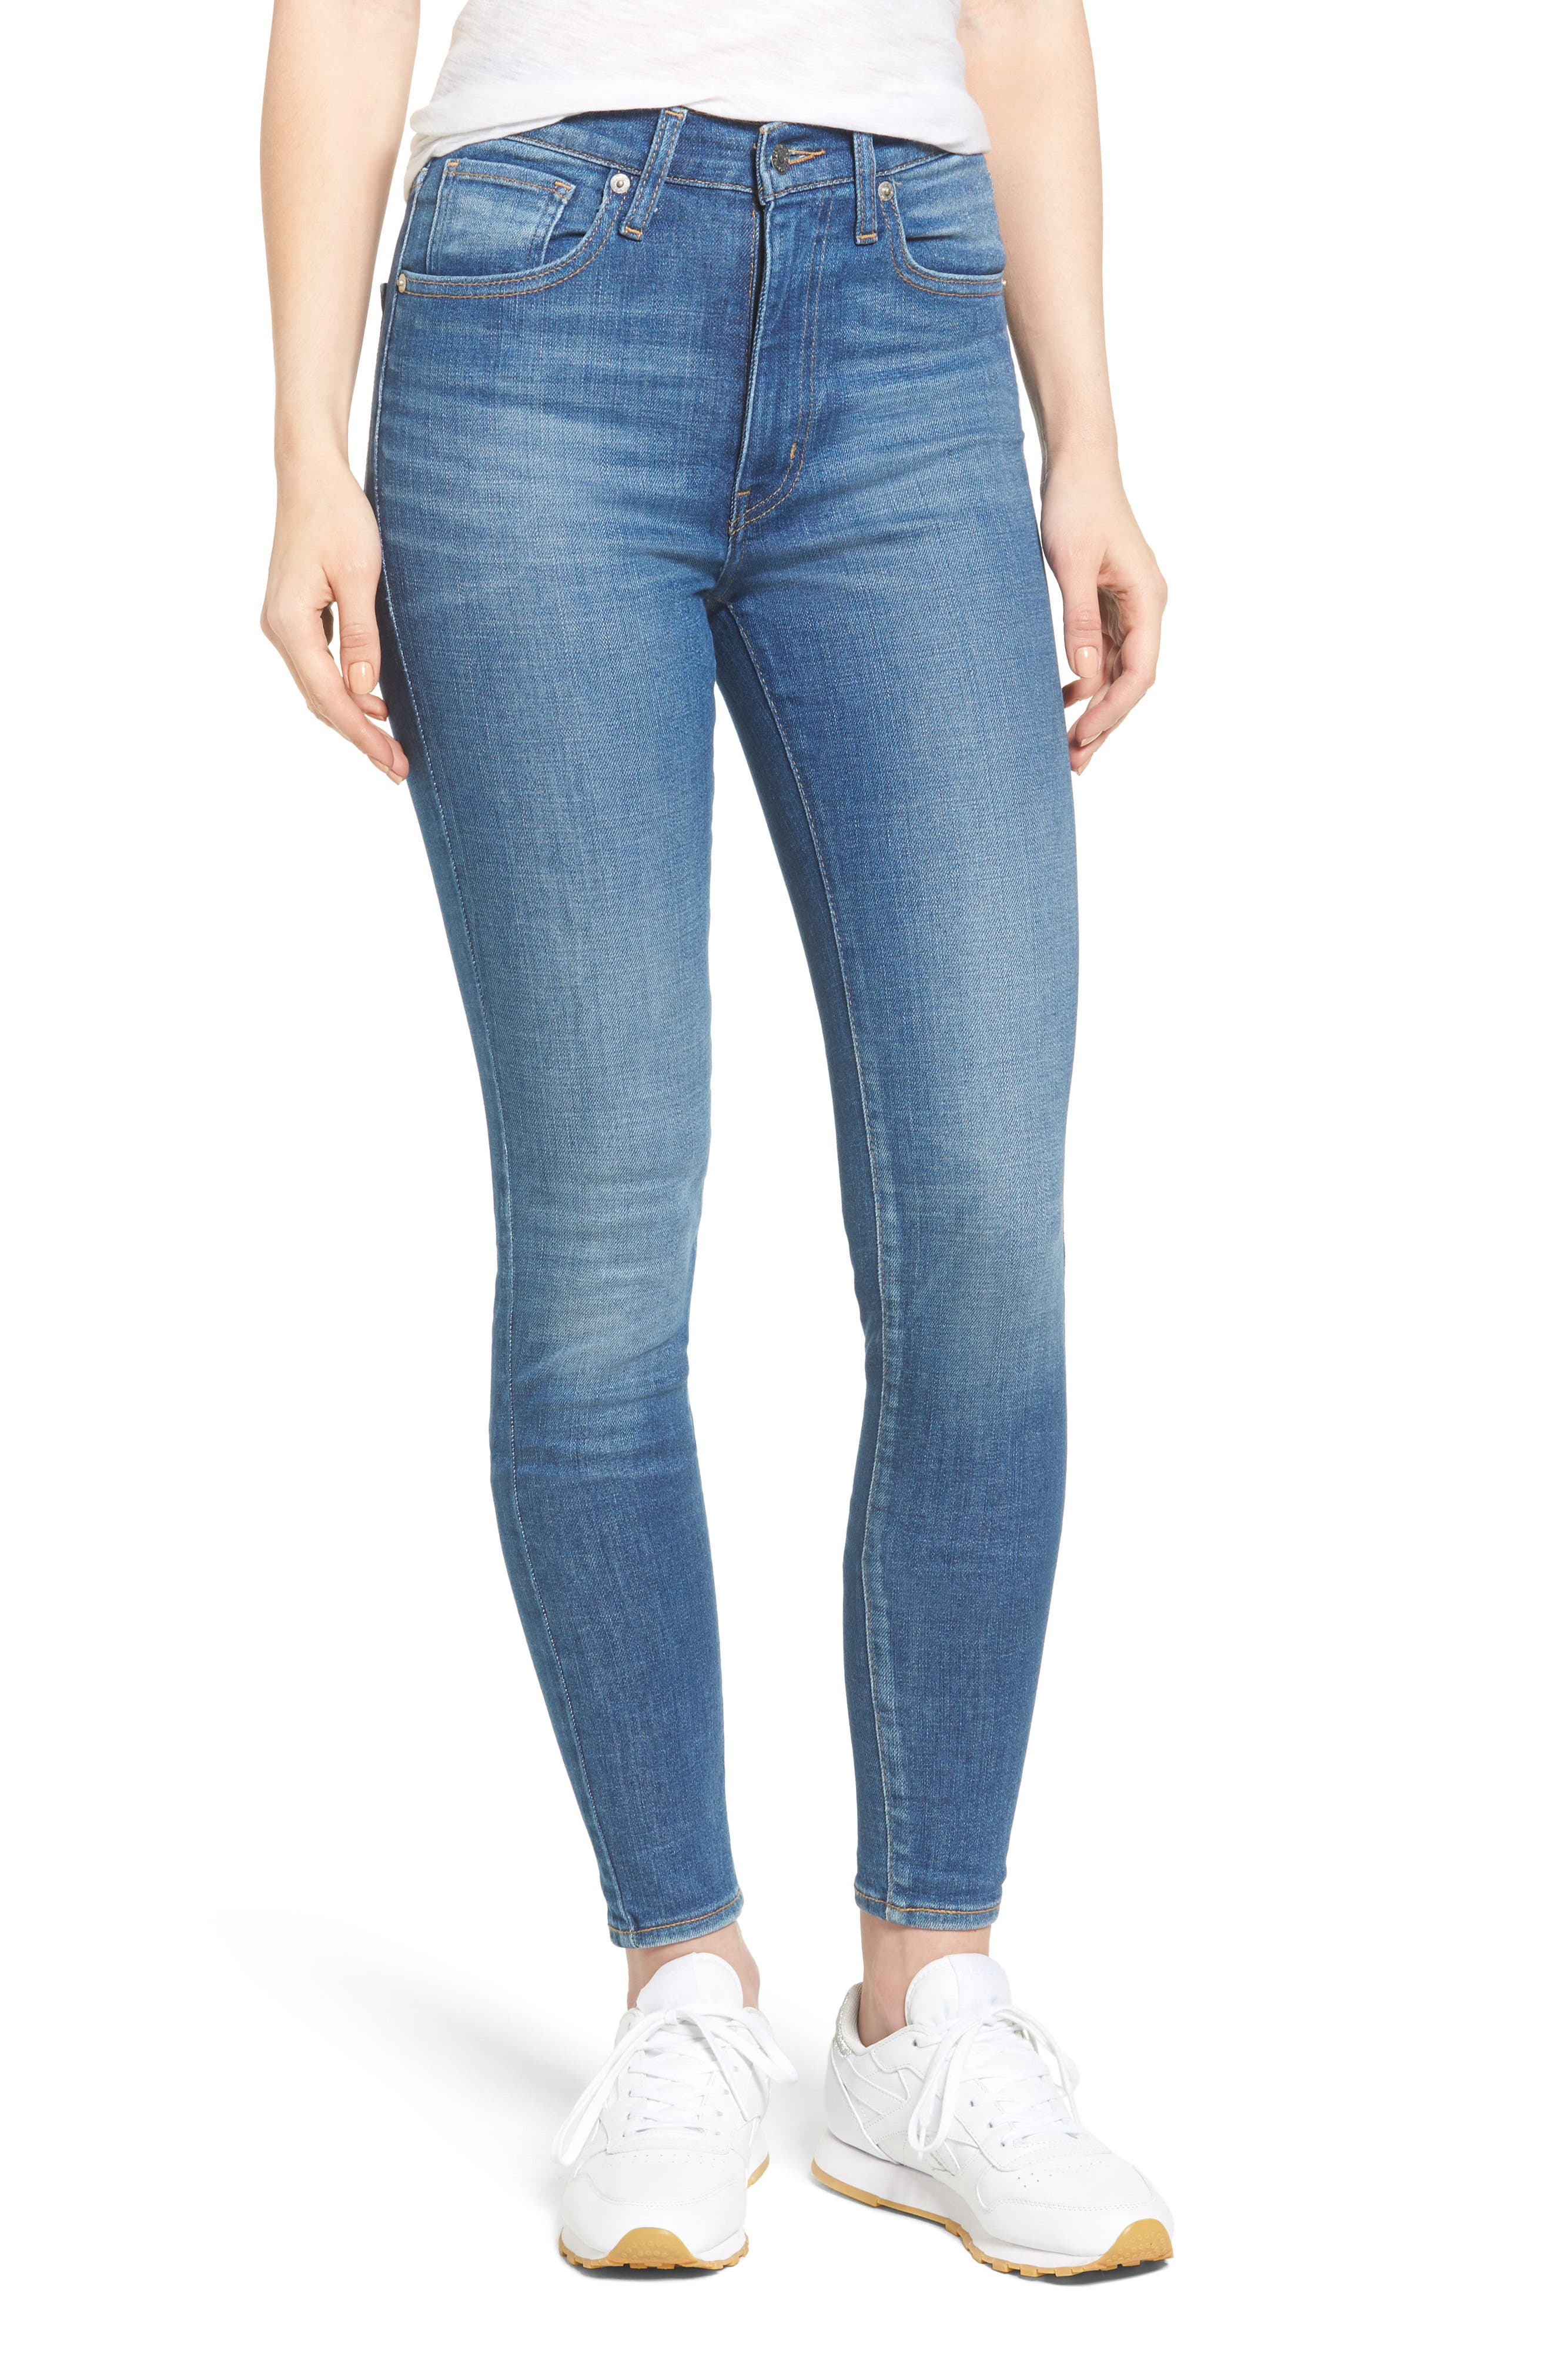 Mile High Skinny Jeans,                         Main,                         color,